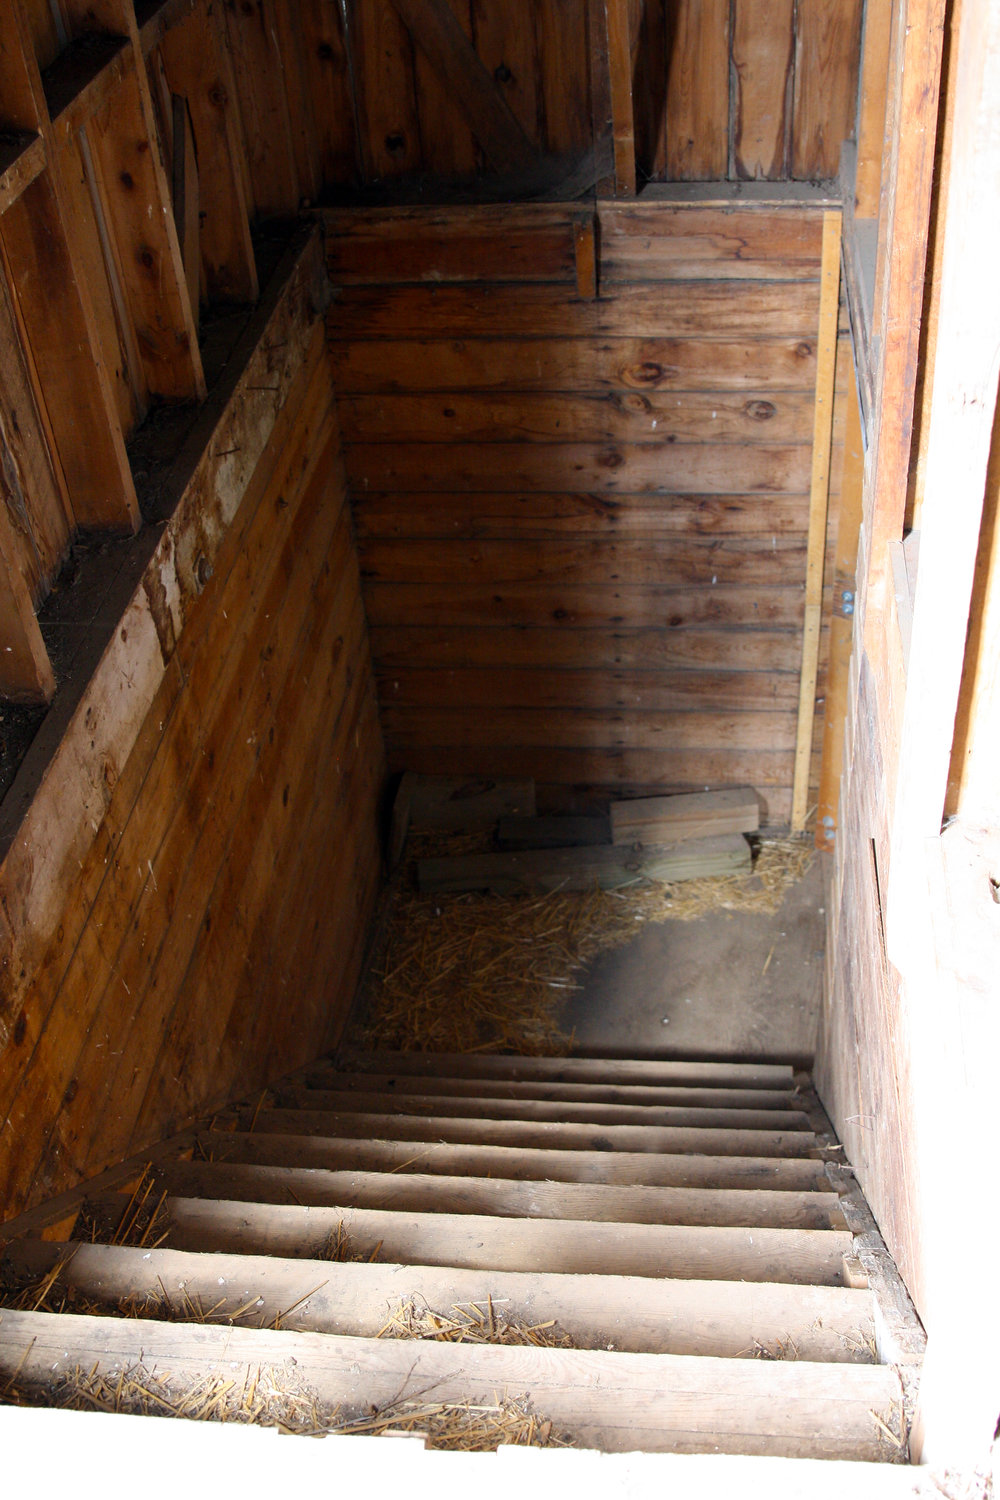 Looking down the narrow staircase in the barn.